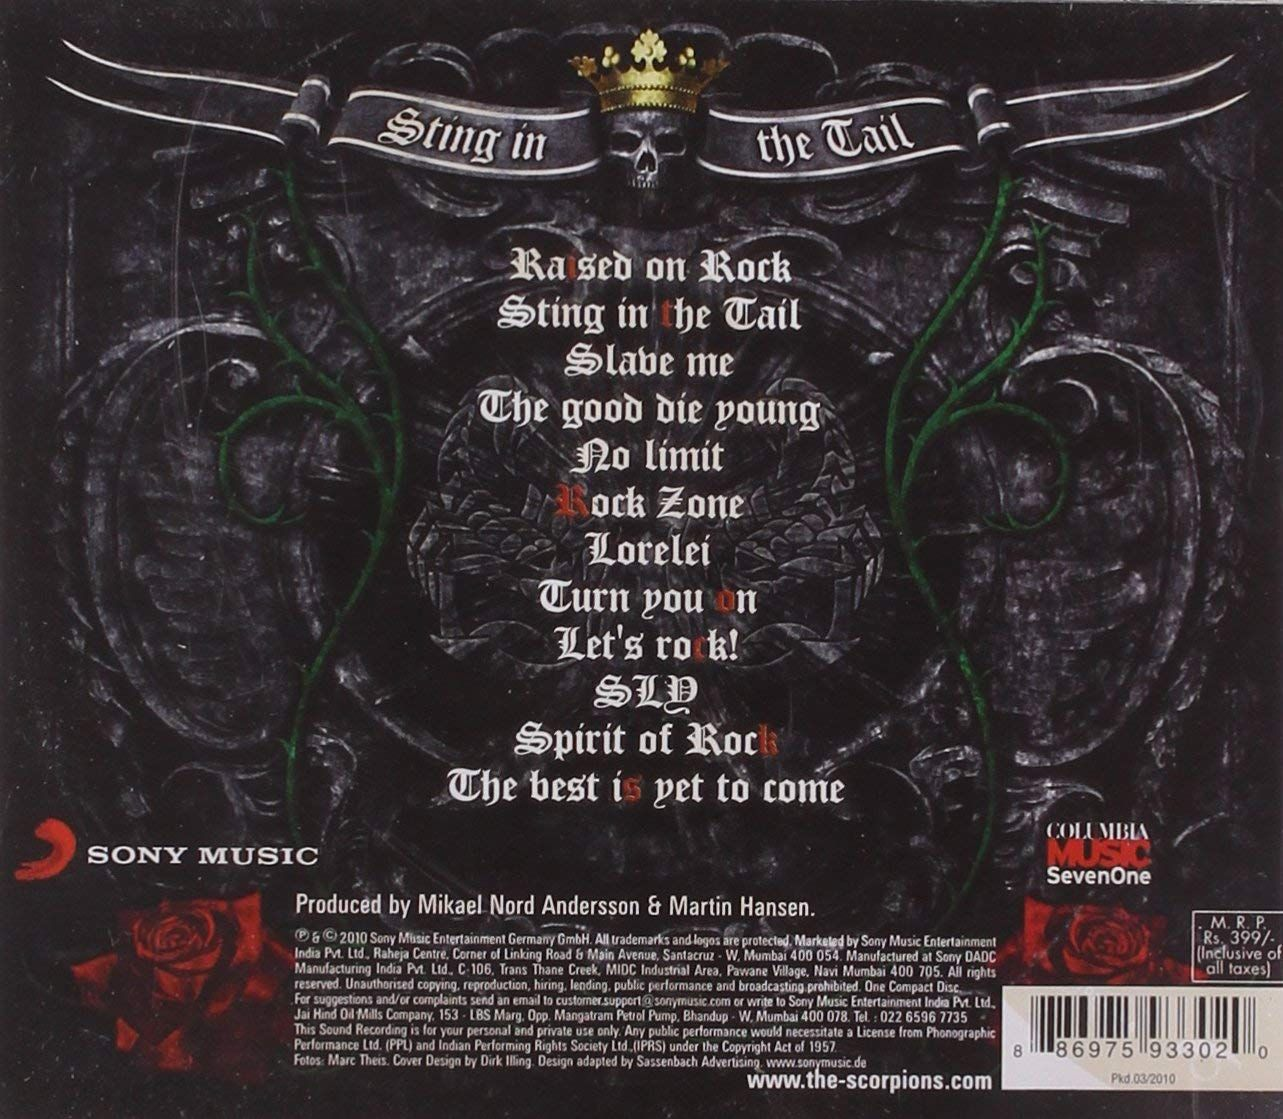 Scorpions - Sting in the Tail (CD) - 2